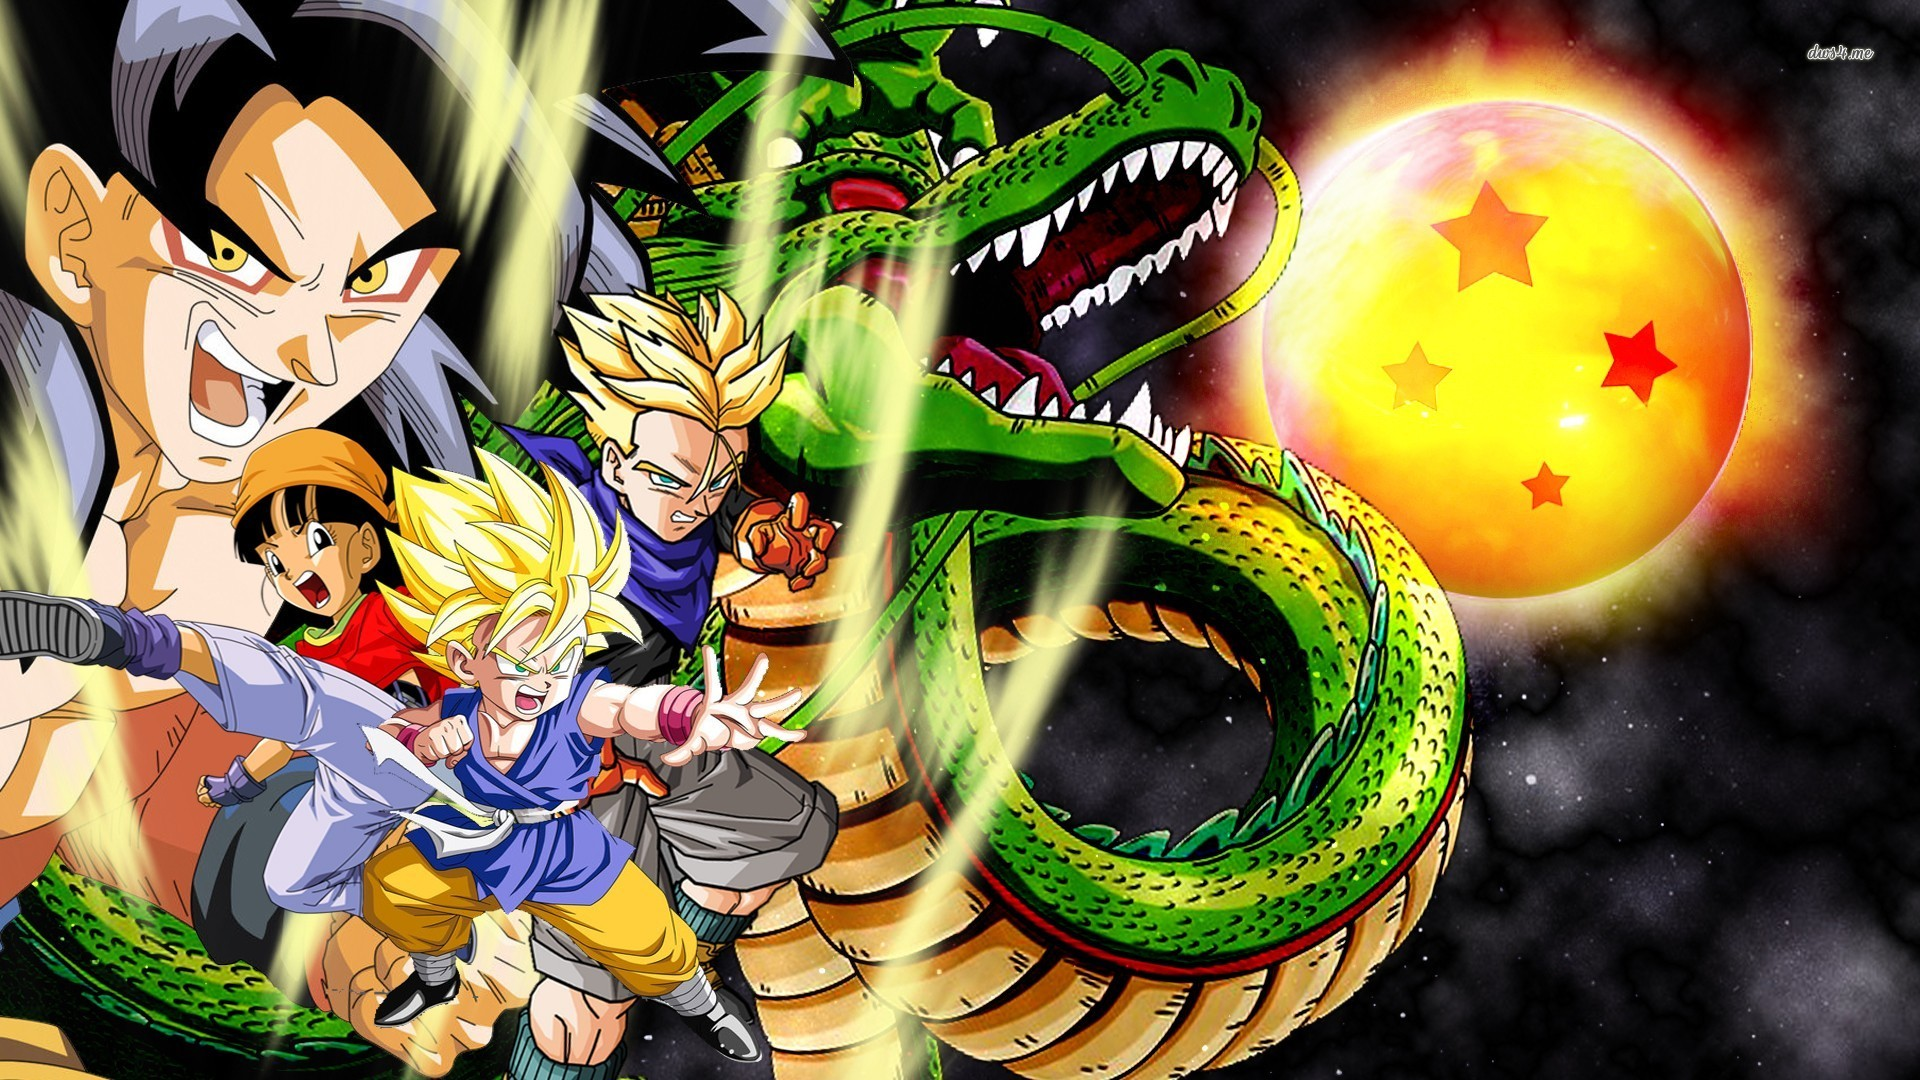 GT wallpaper 1280x800 Dragon Ball GT wallpaper 1366x768 Dragon Ball GT 1920x1080